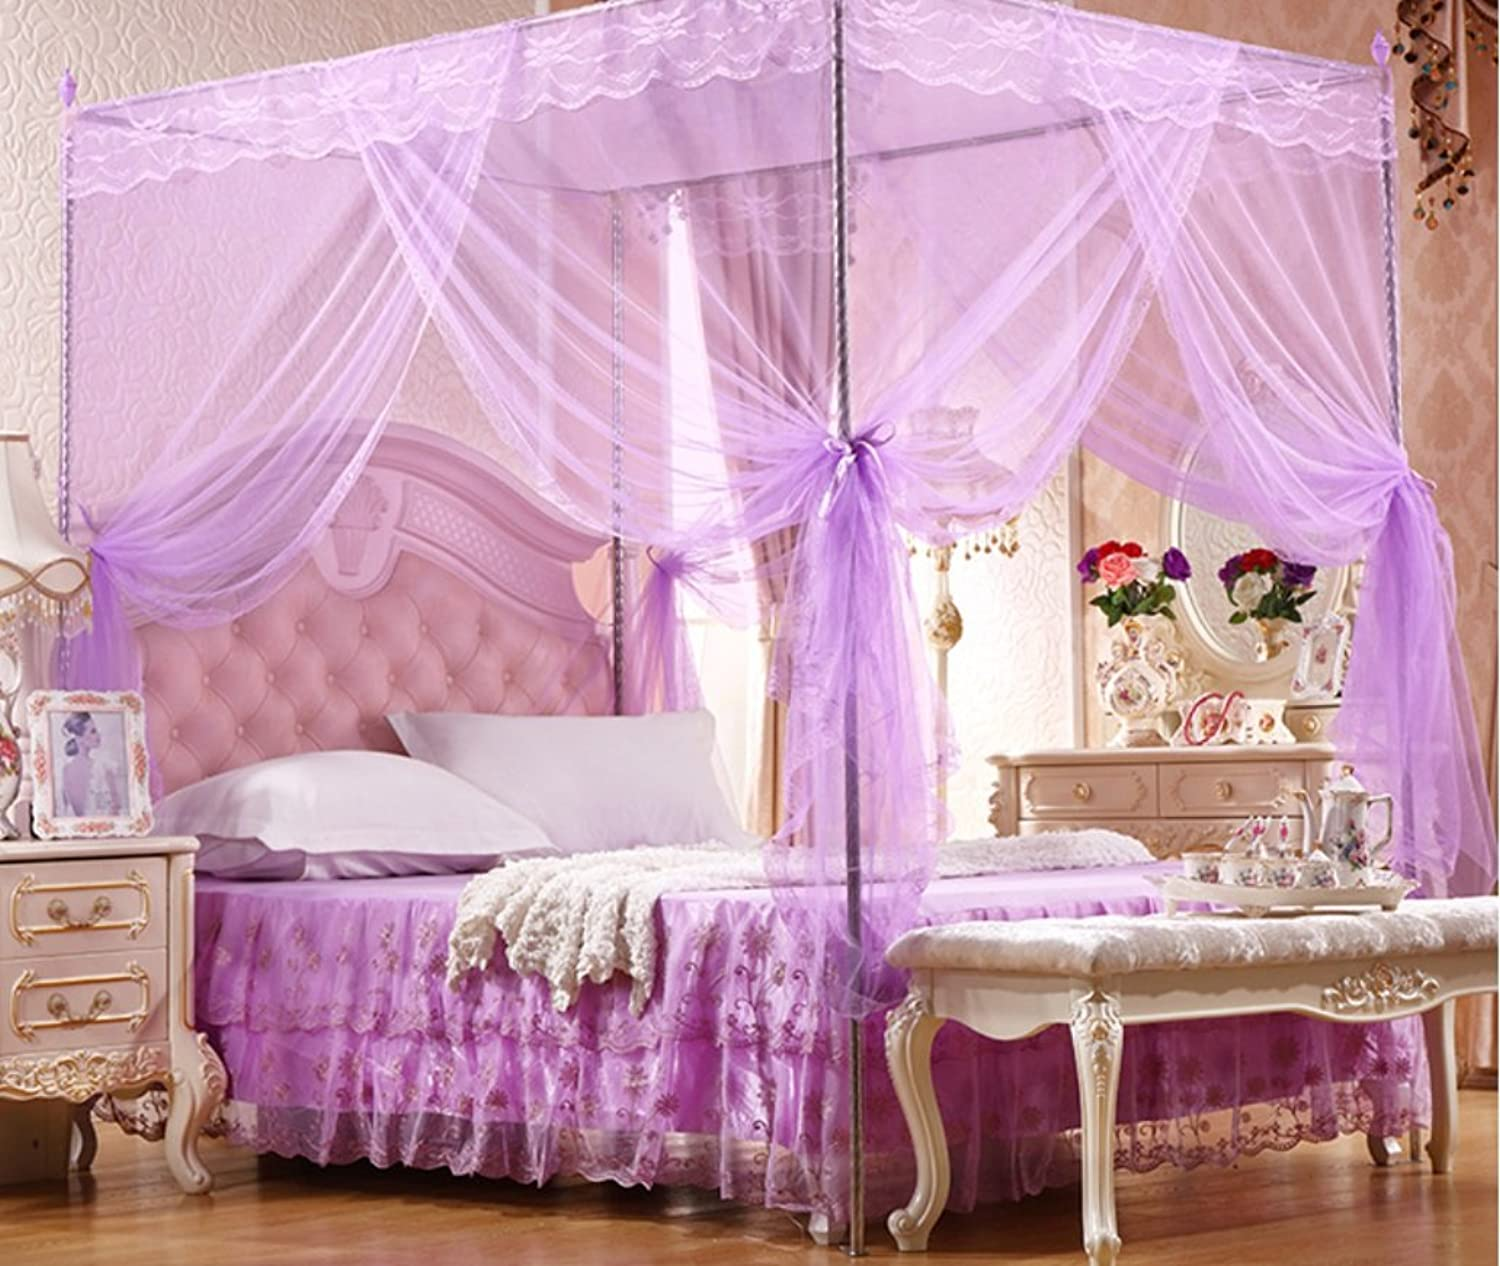 Palace Nets Encrypted Account Yarn Stainless Steel Floor Stand Three Door Mosquito Nets ZXCV (color   Purple, Size   135x200x200 (20  Bracket))